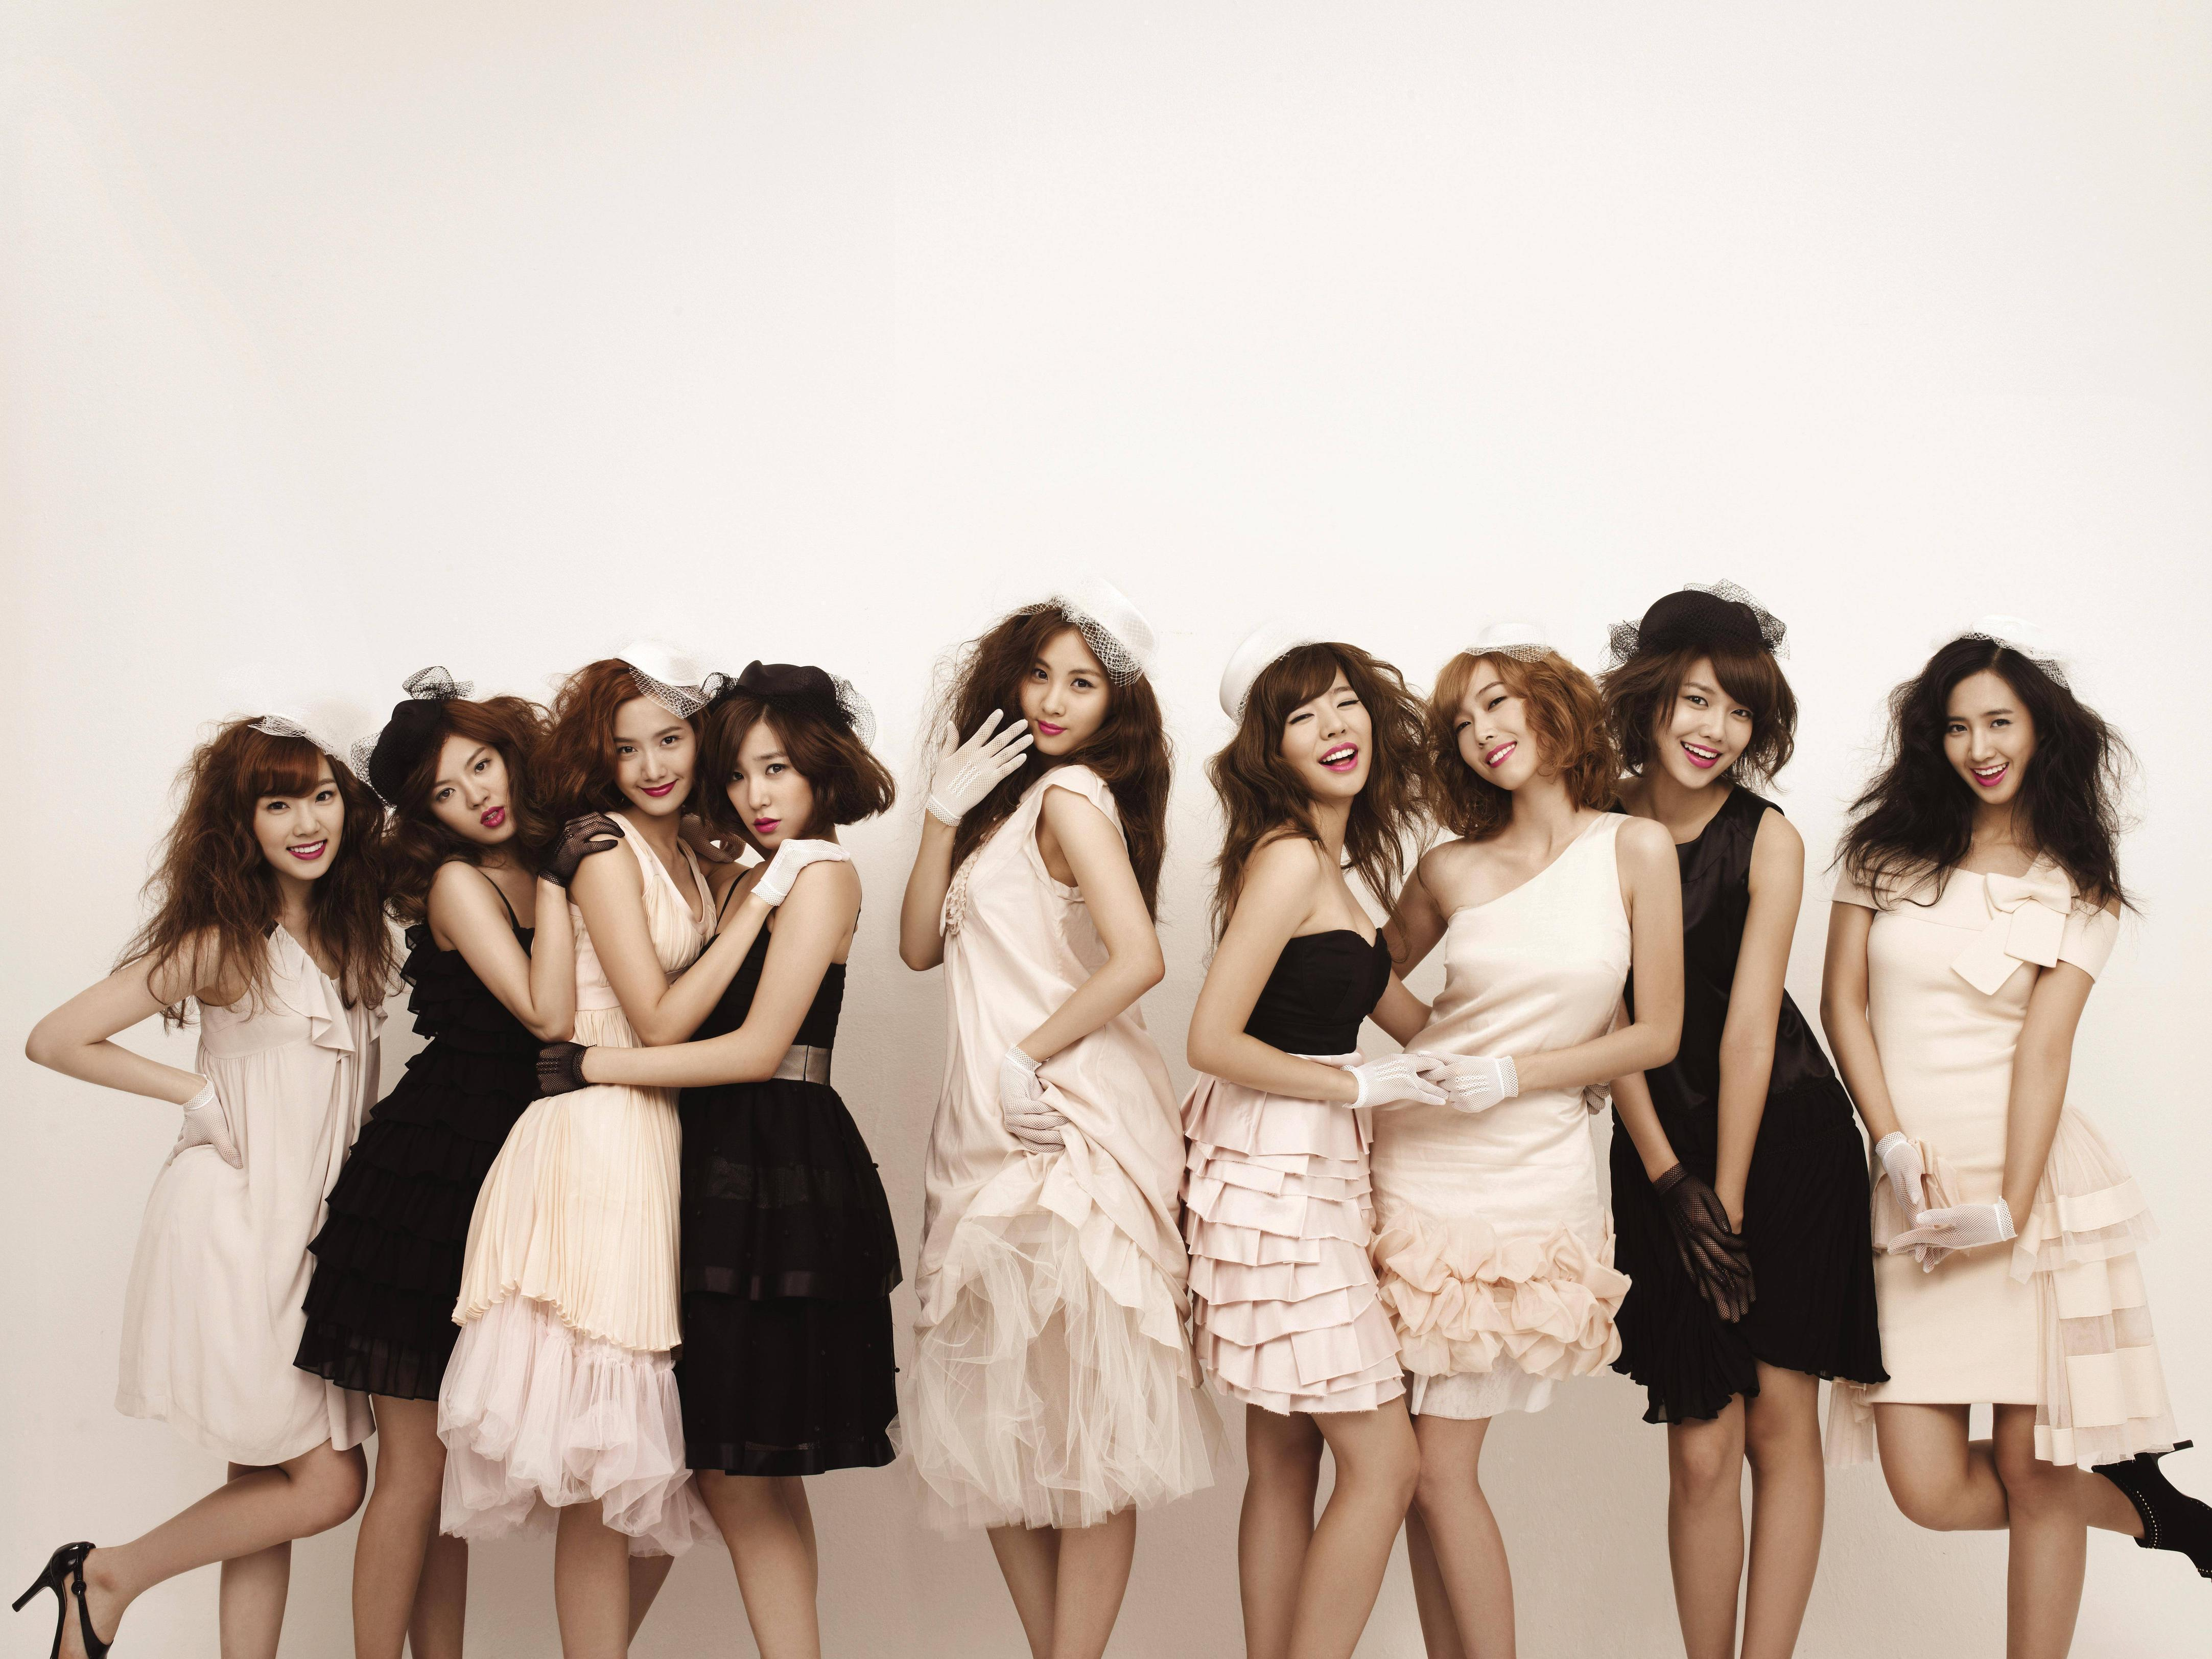 Wallpapers SNSD 2015 - Wallpaper Cave